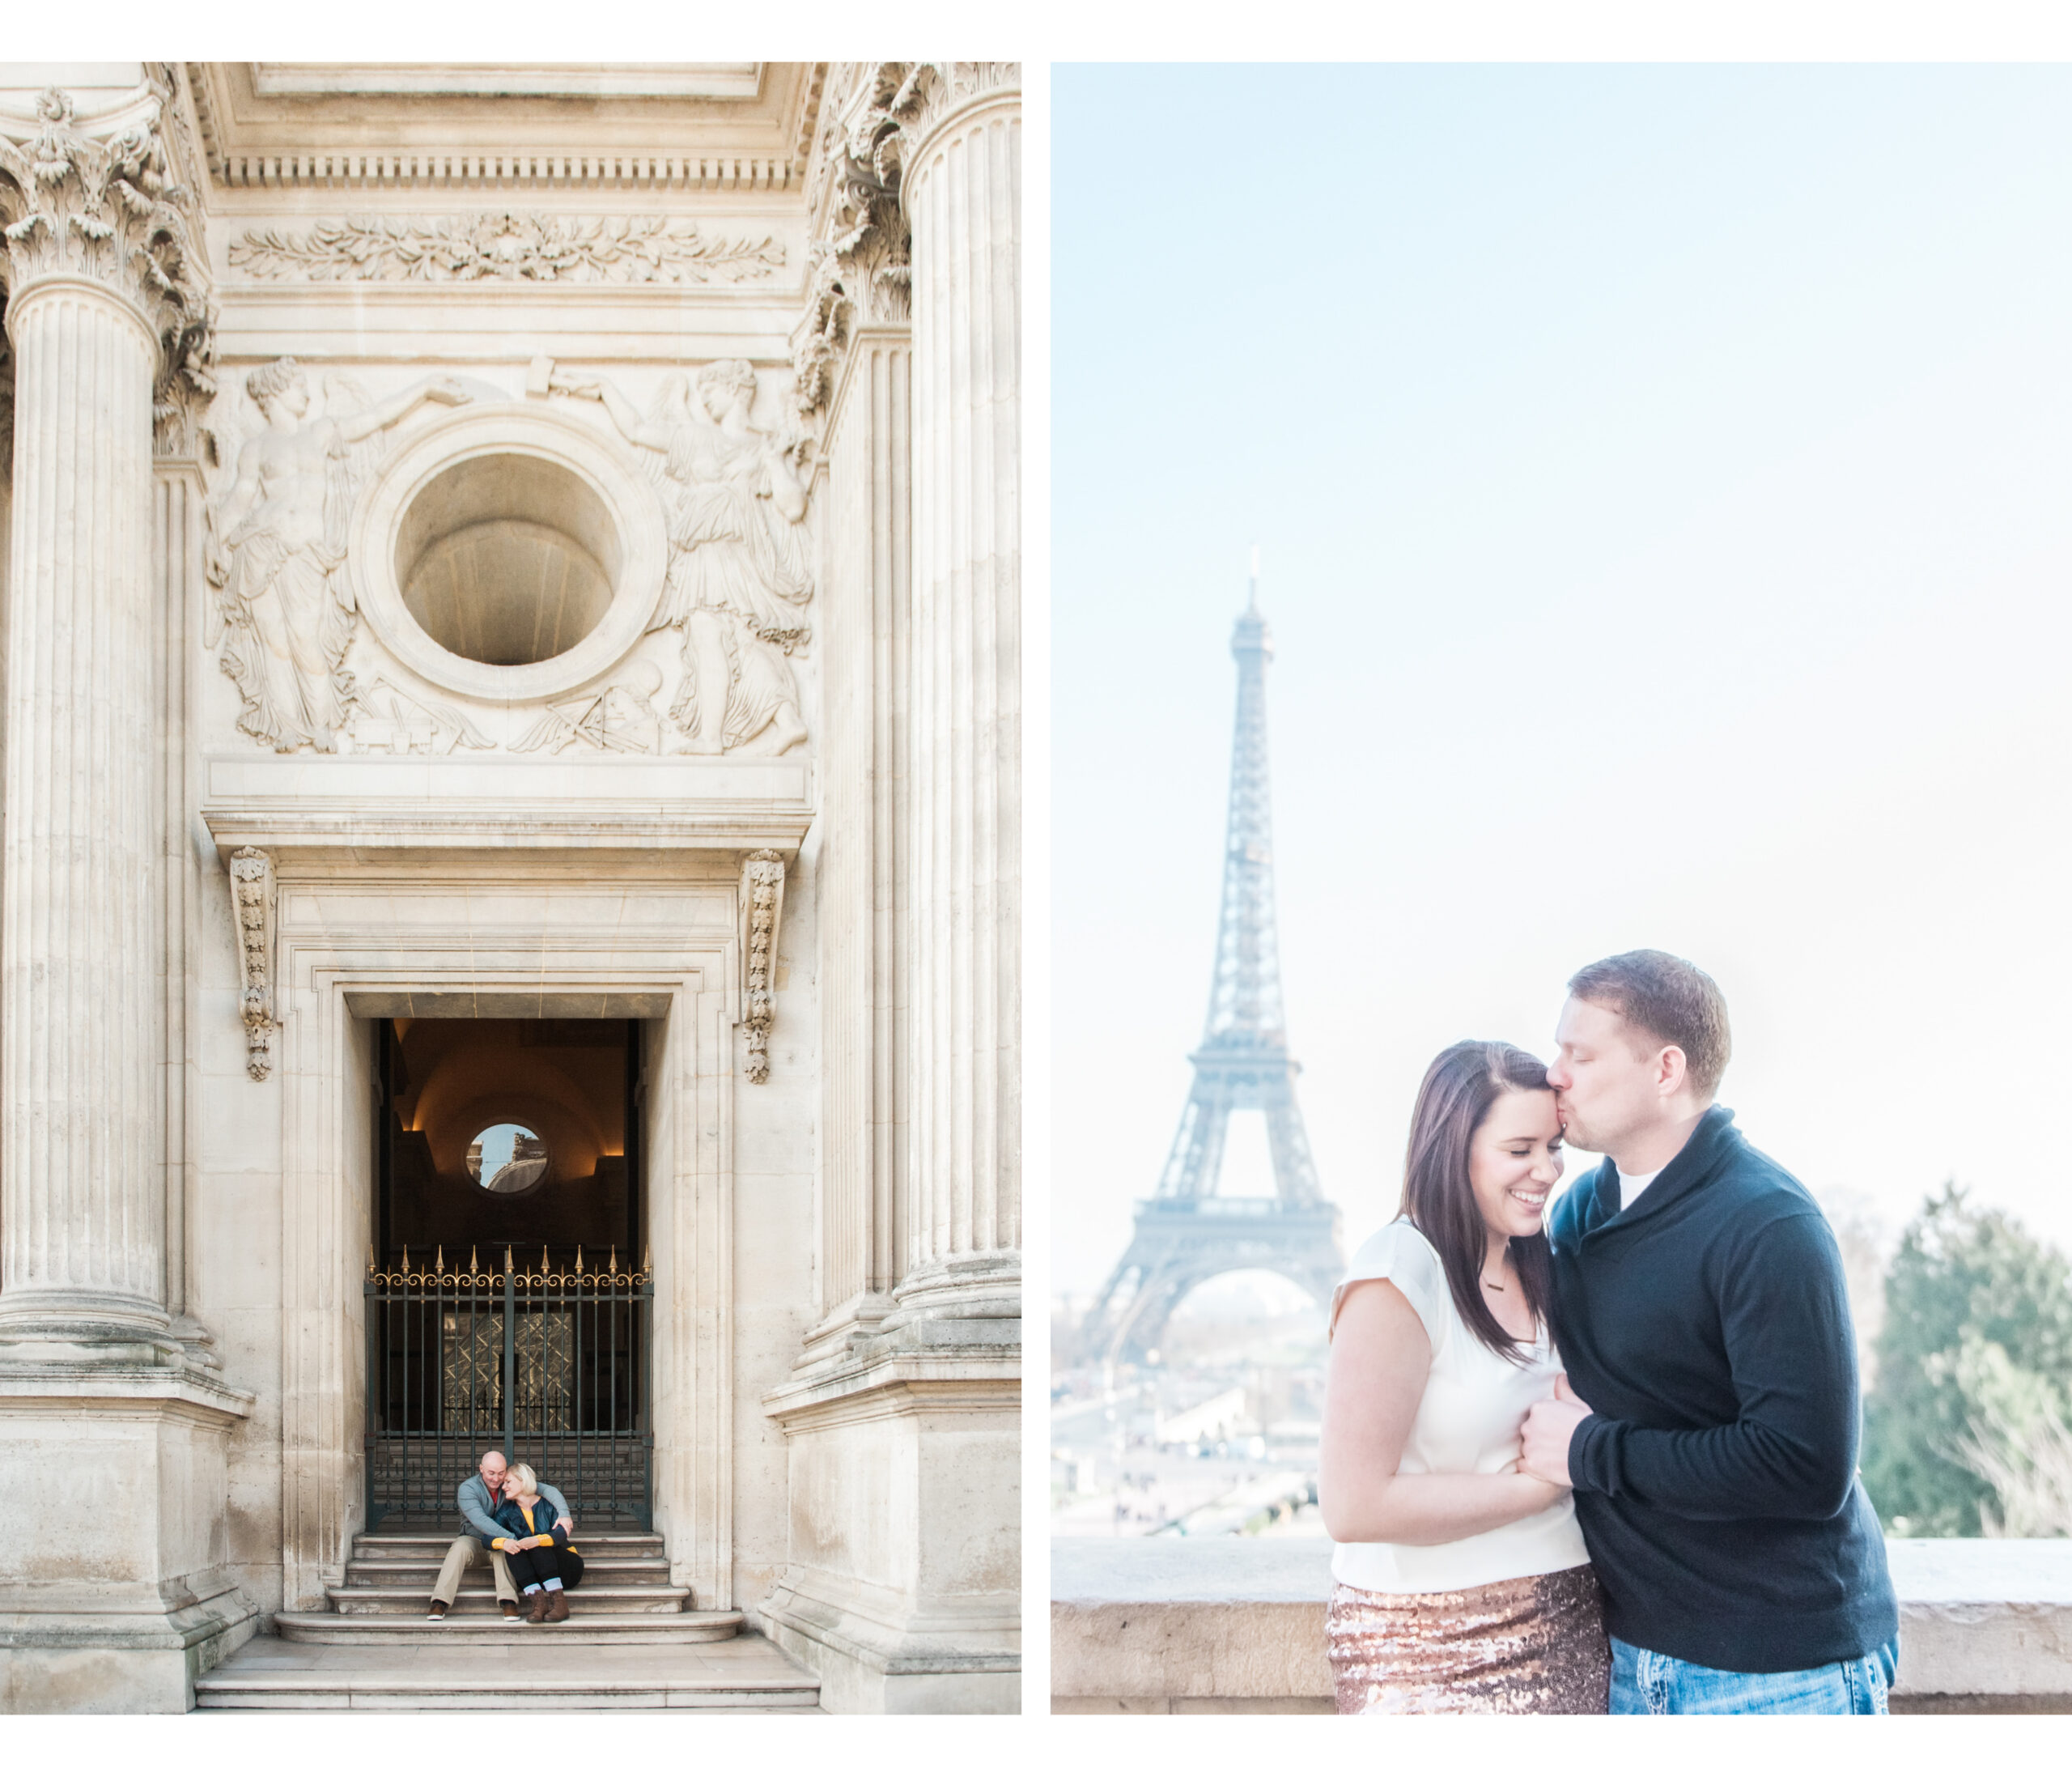 couple shoot at the Paris city centre around the Louvre and Eiffel Tower